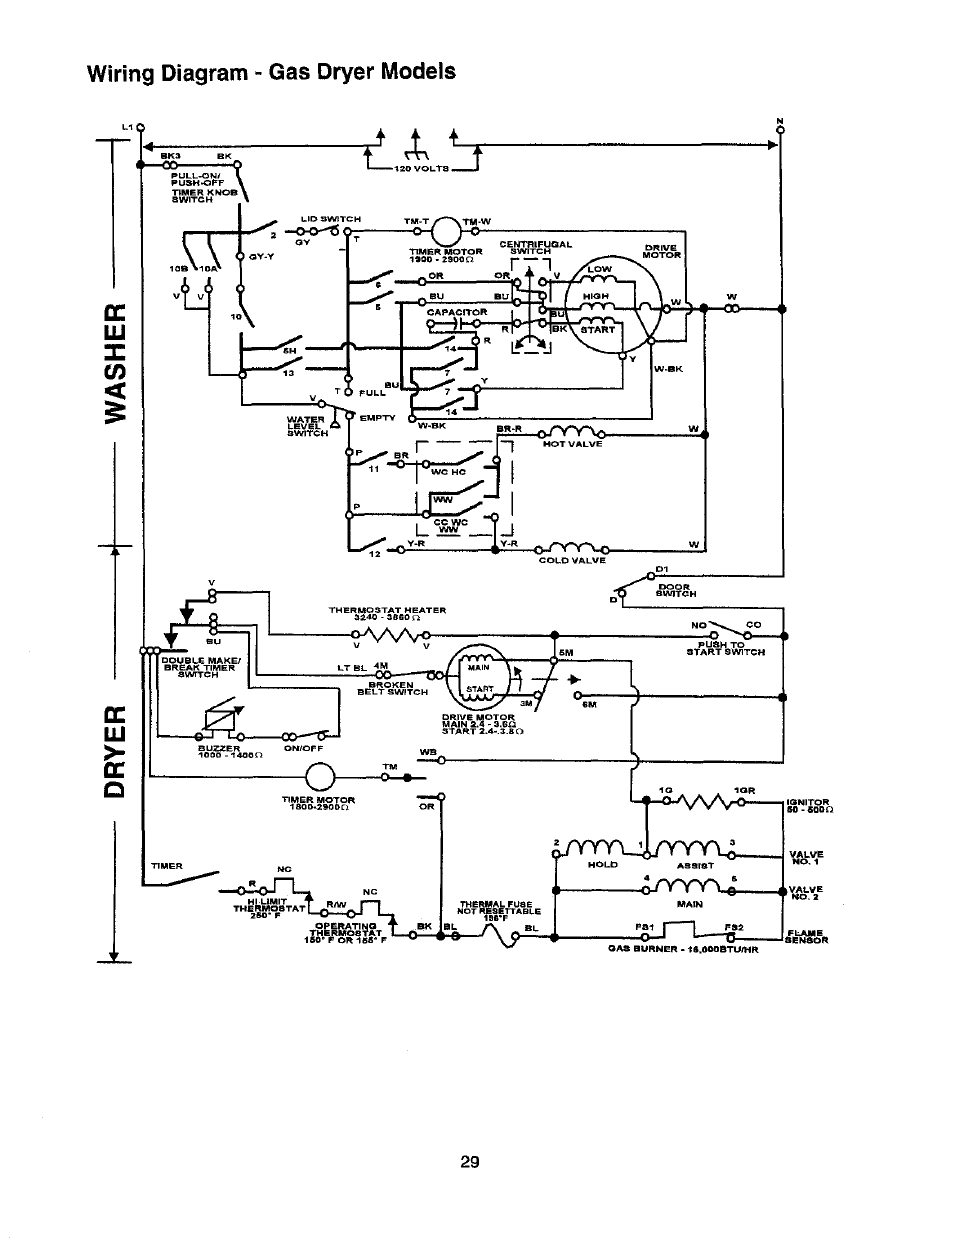 Wiring diagram - gas dryer models | Whirlpool Thin Twin User Manual | Page  36 / 40Manuals Directory